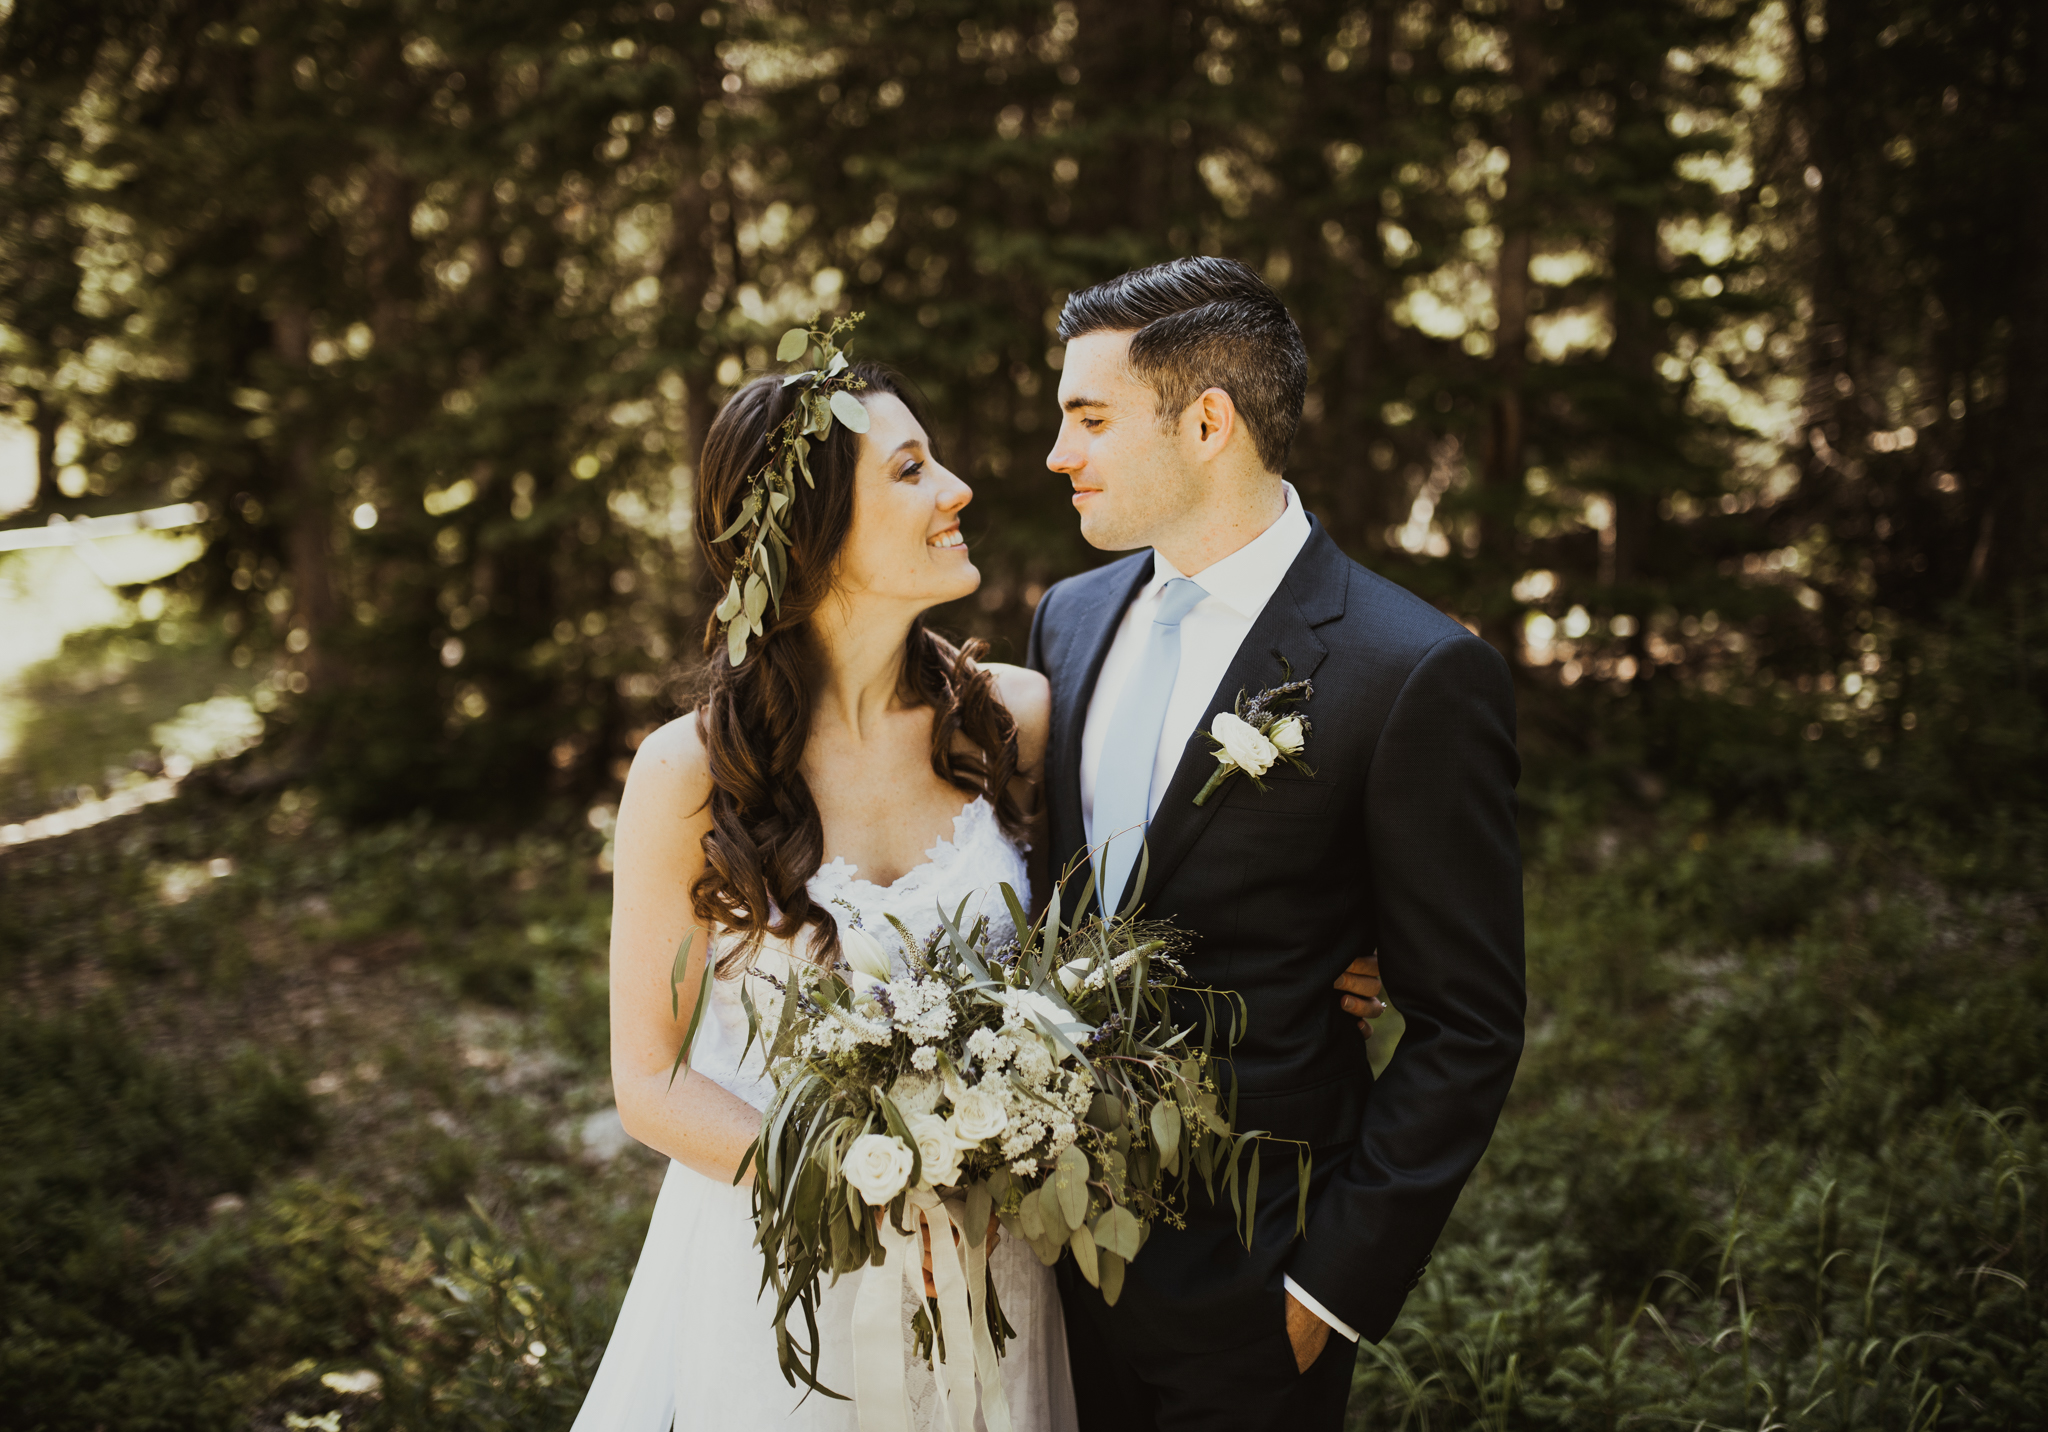 ©Isaiah + Taylor Photography - Estes National Park Adventure Elopement, Colorado Rockies-57.jpg